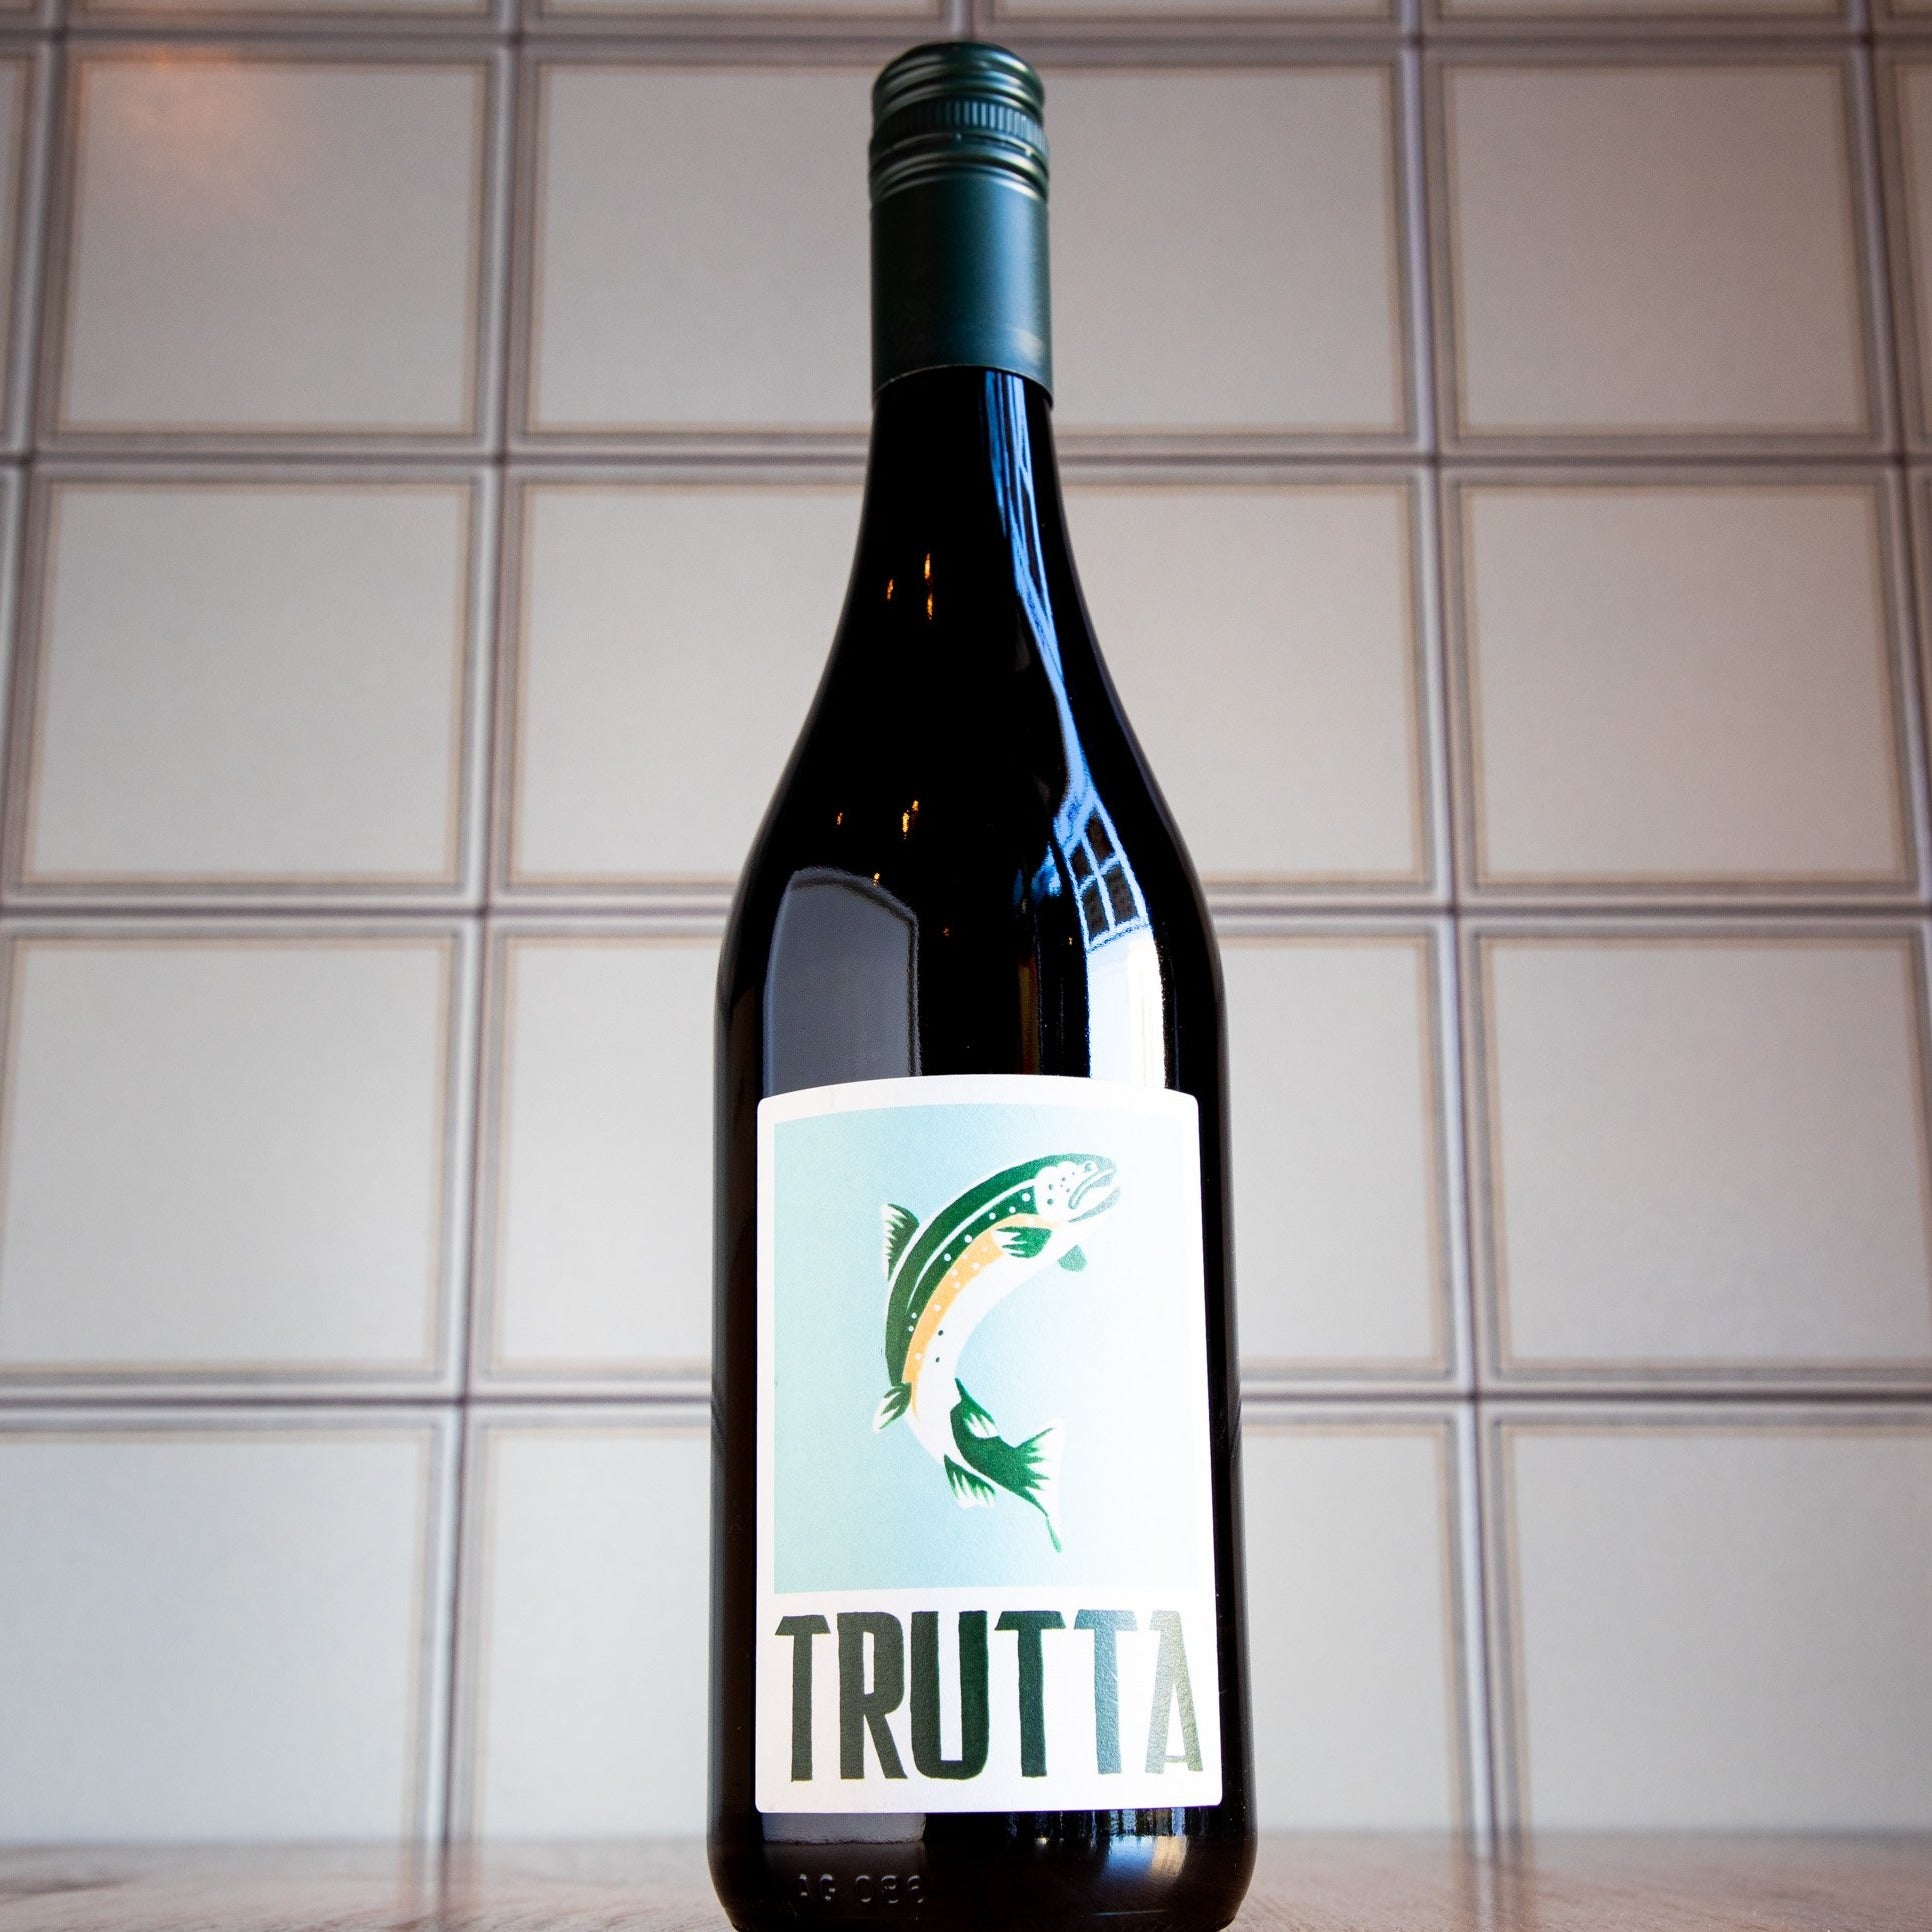 2019 Trutta Shiraz